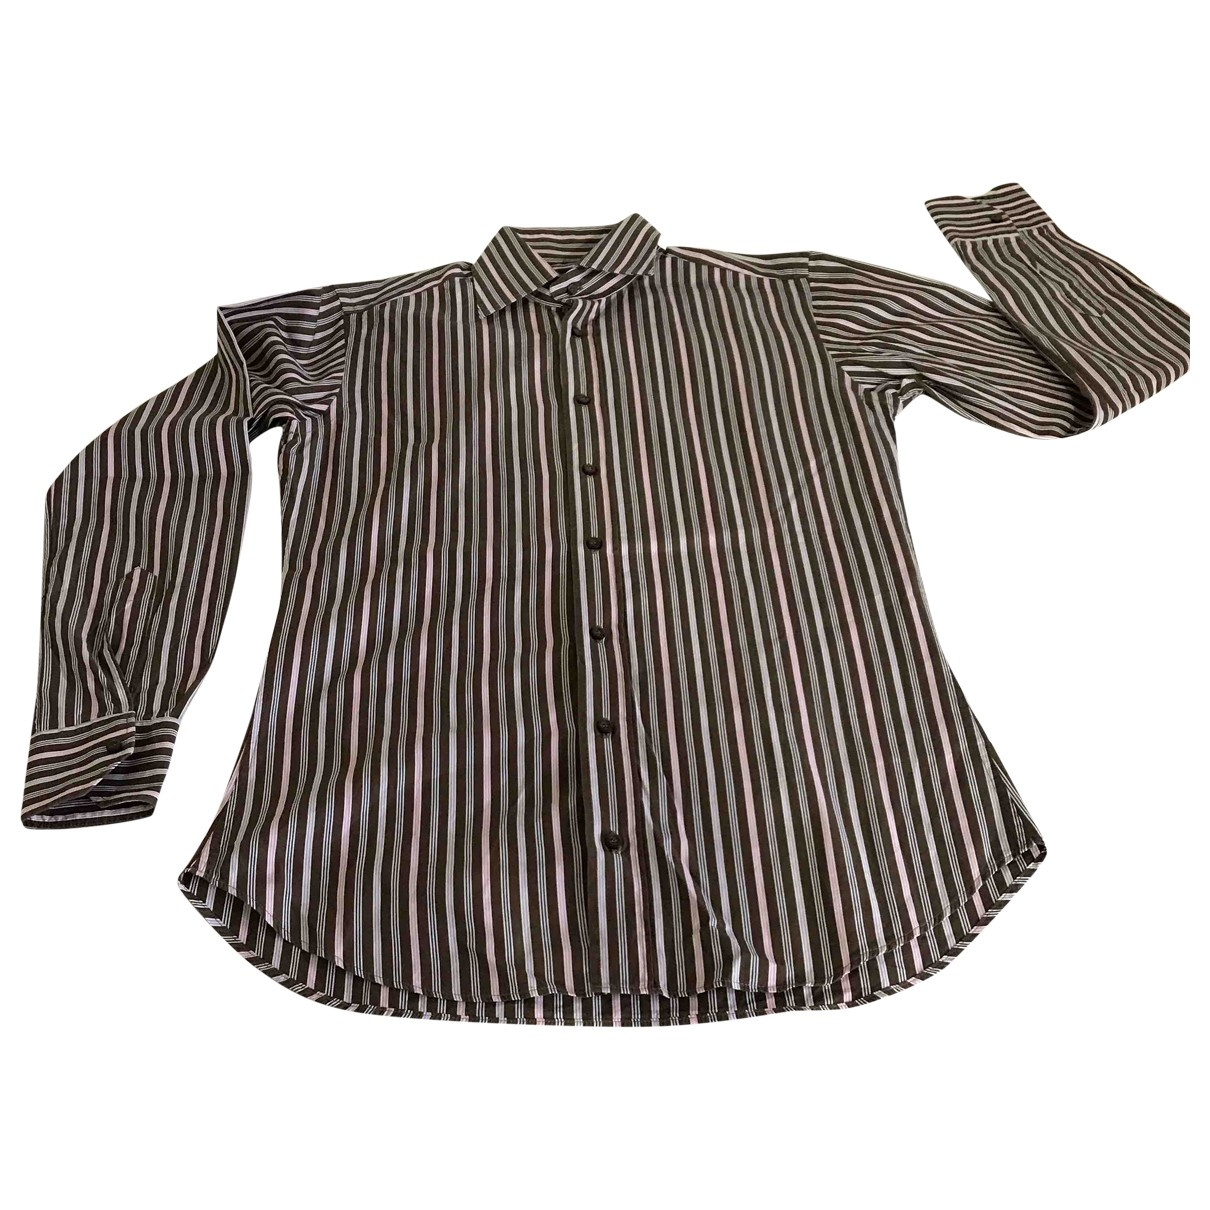 Etro \N Brown Cotton Shirts for Men 39 EU (tour de cou / collar)